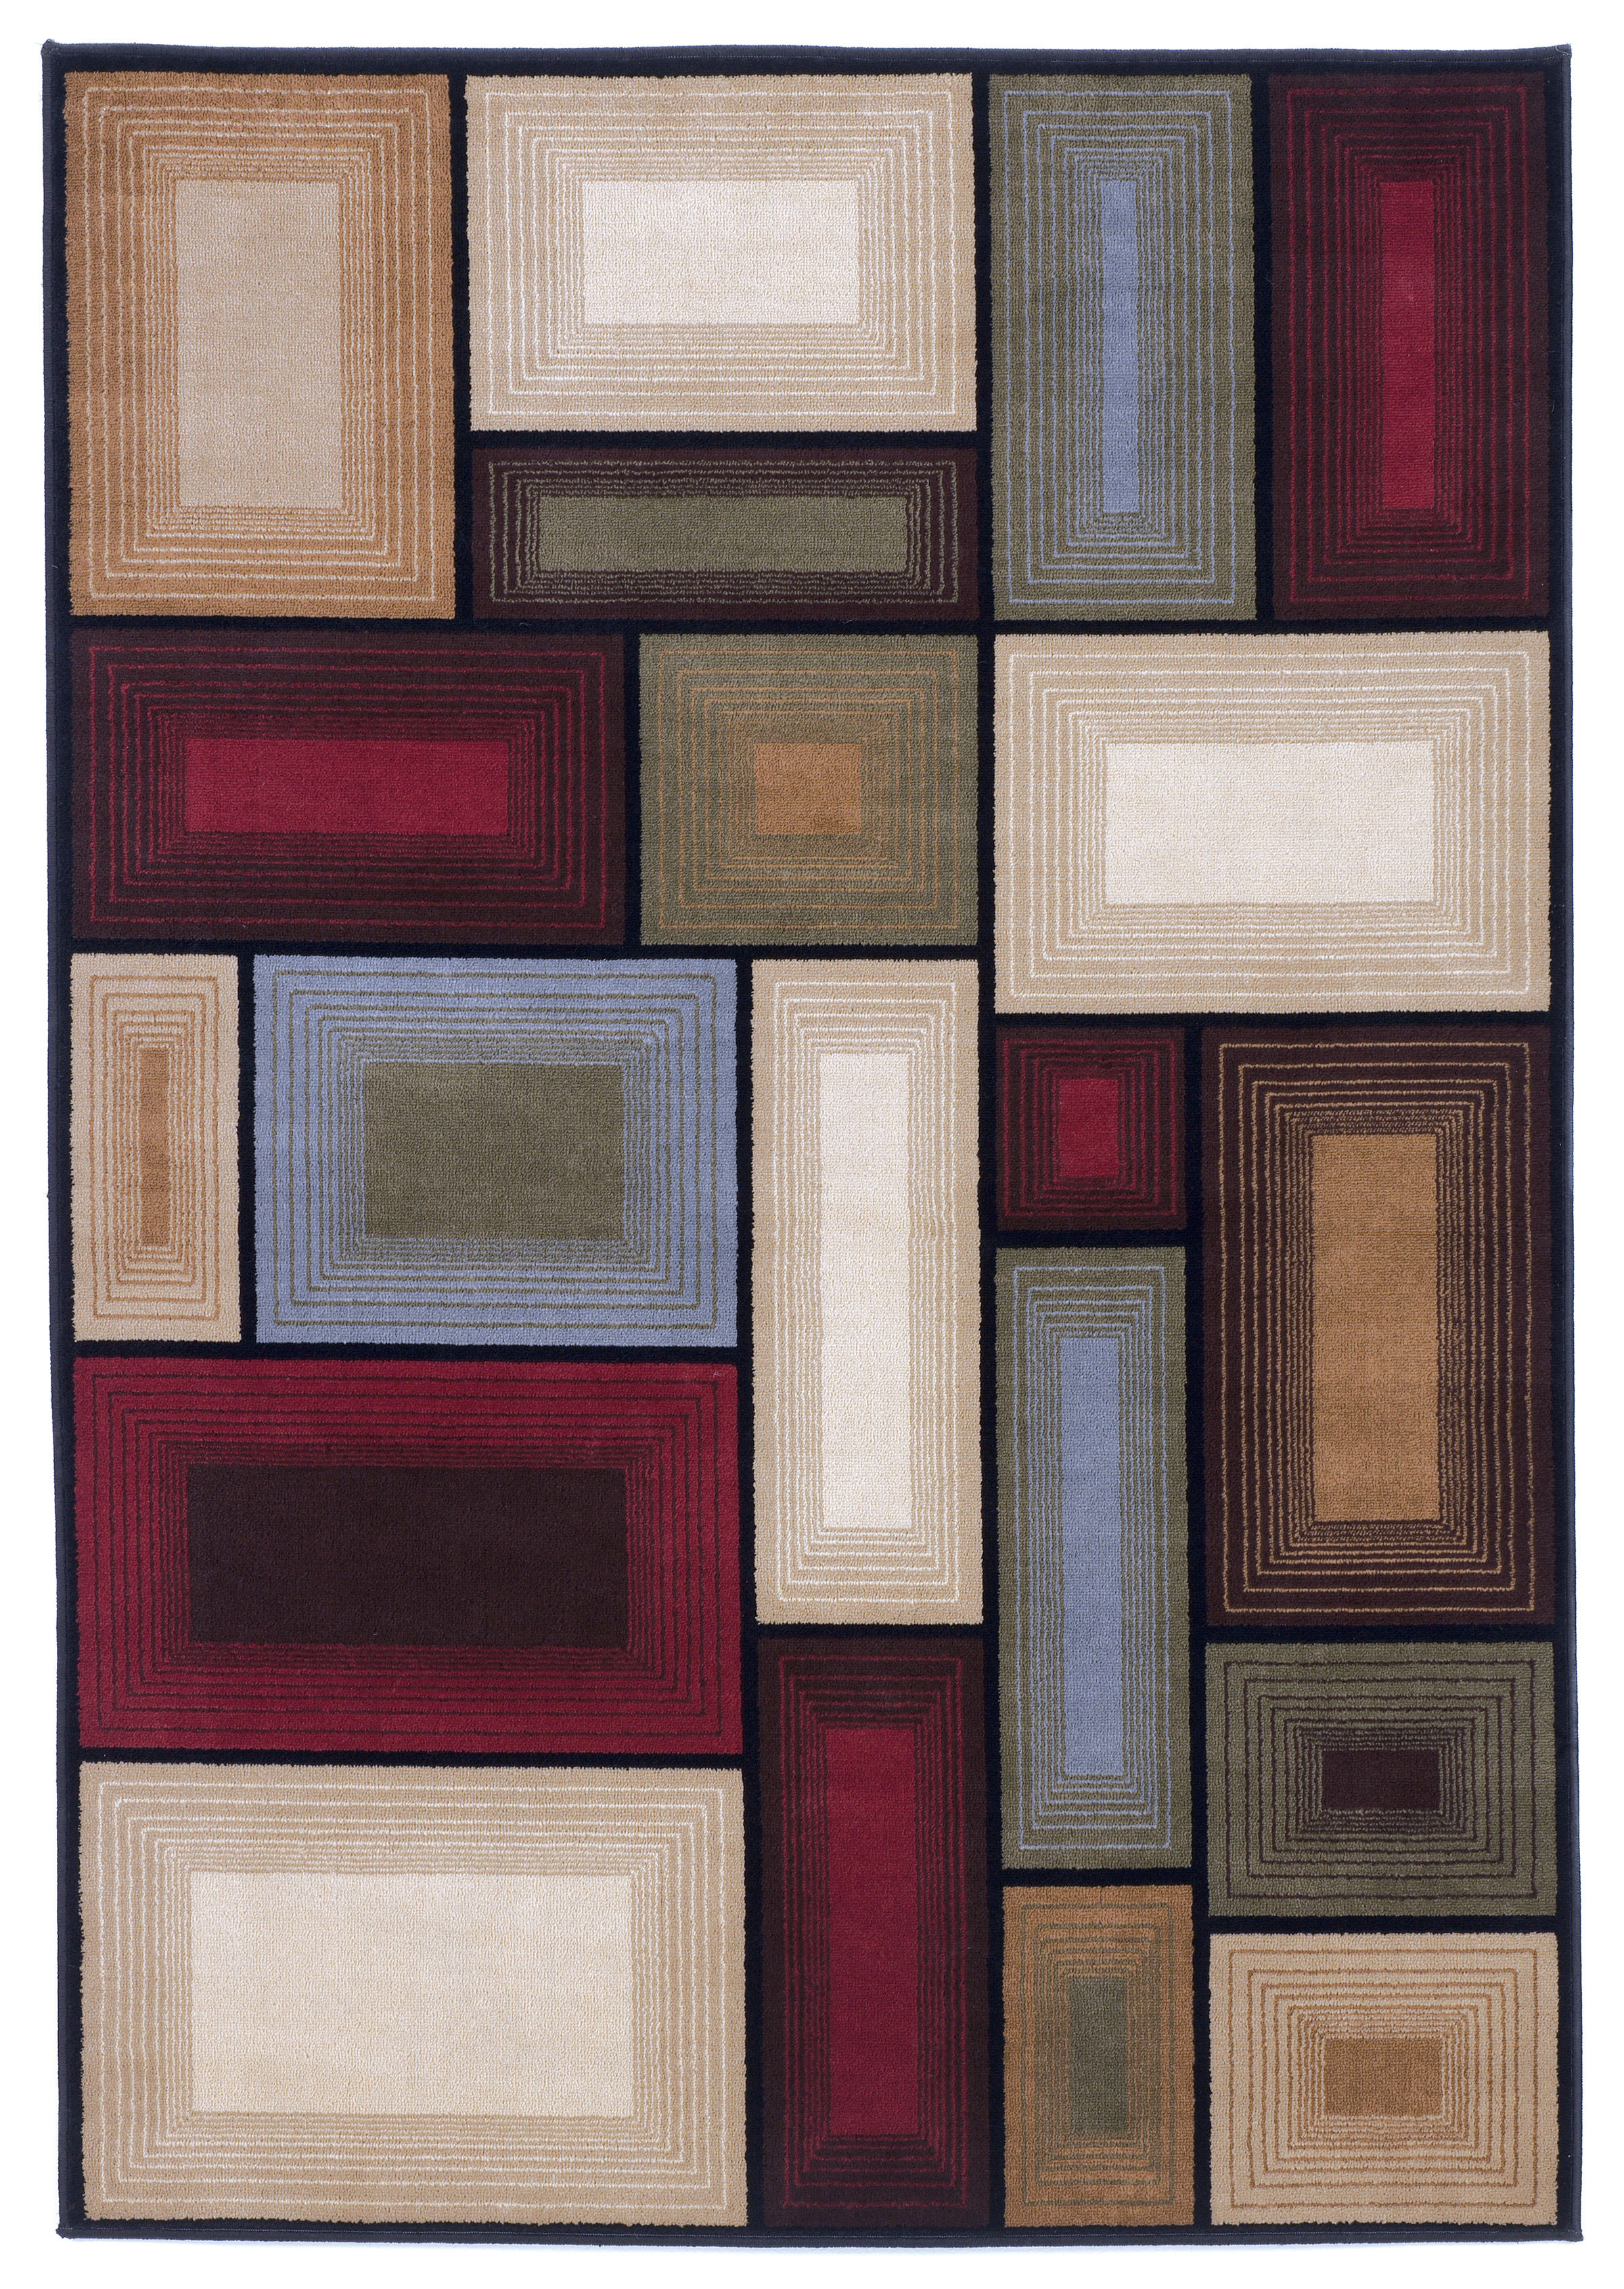 Ashley Furniture Prism Medium Area Rug The Classy Home